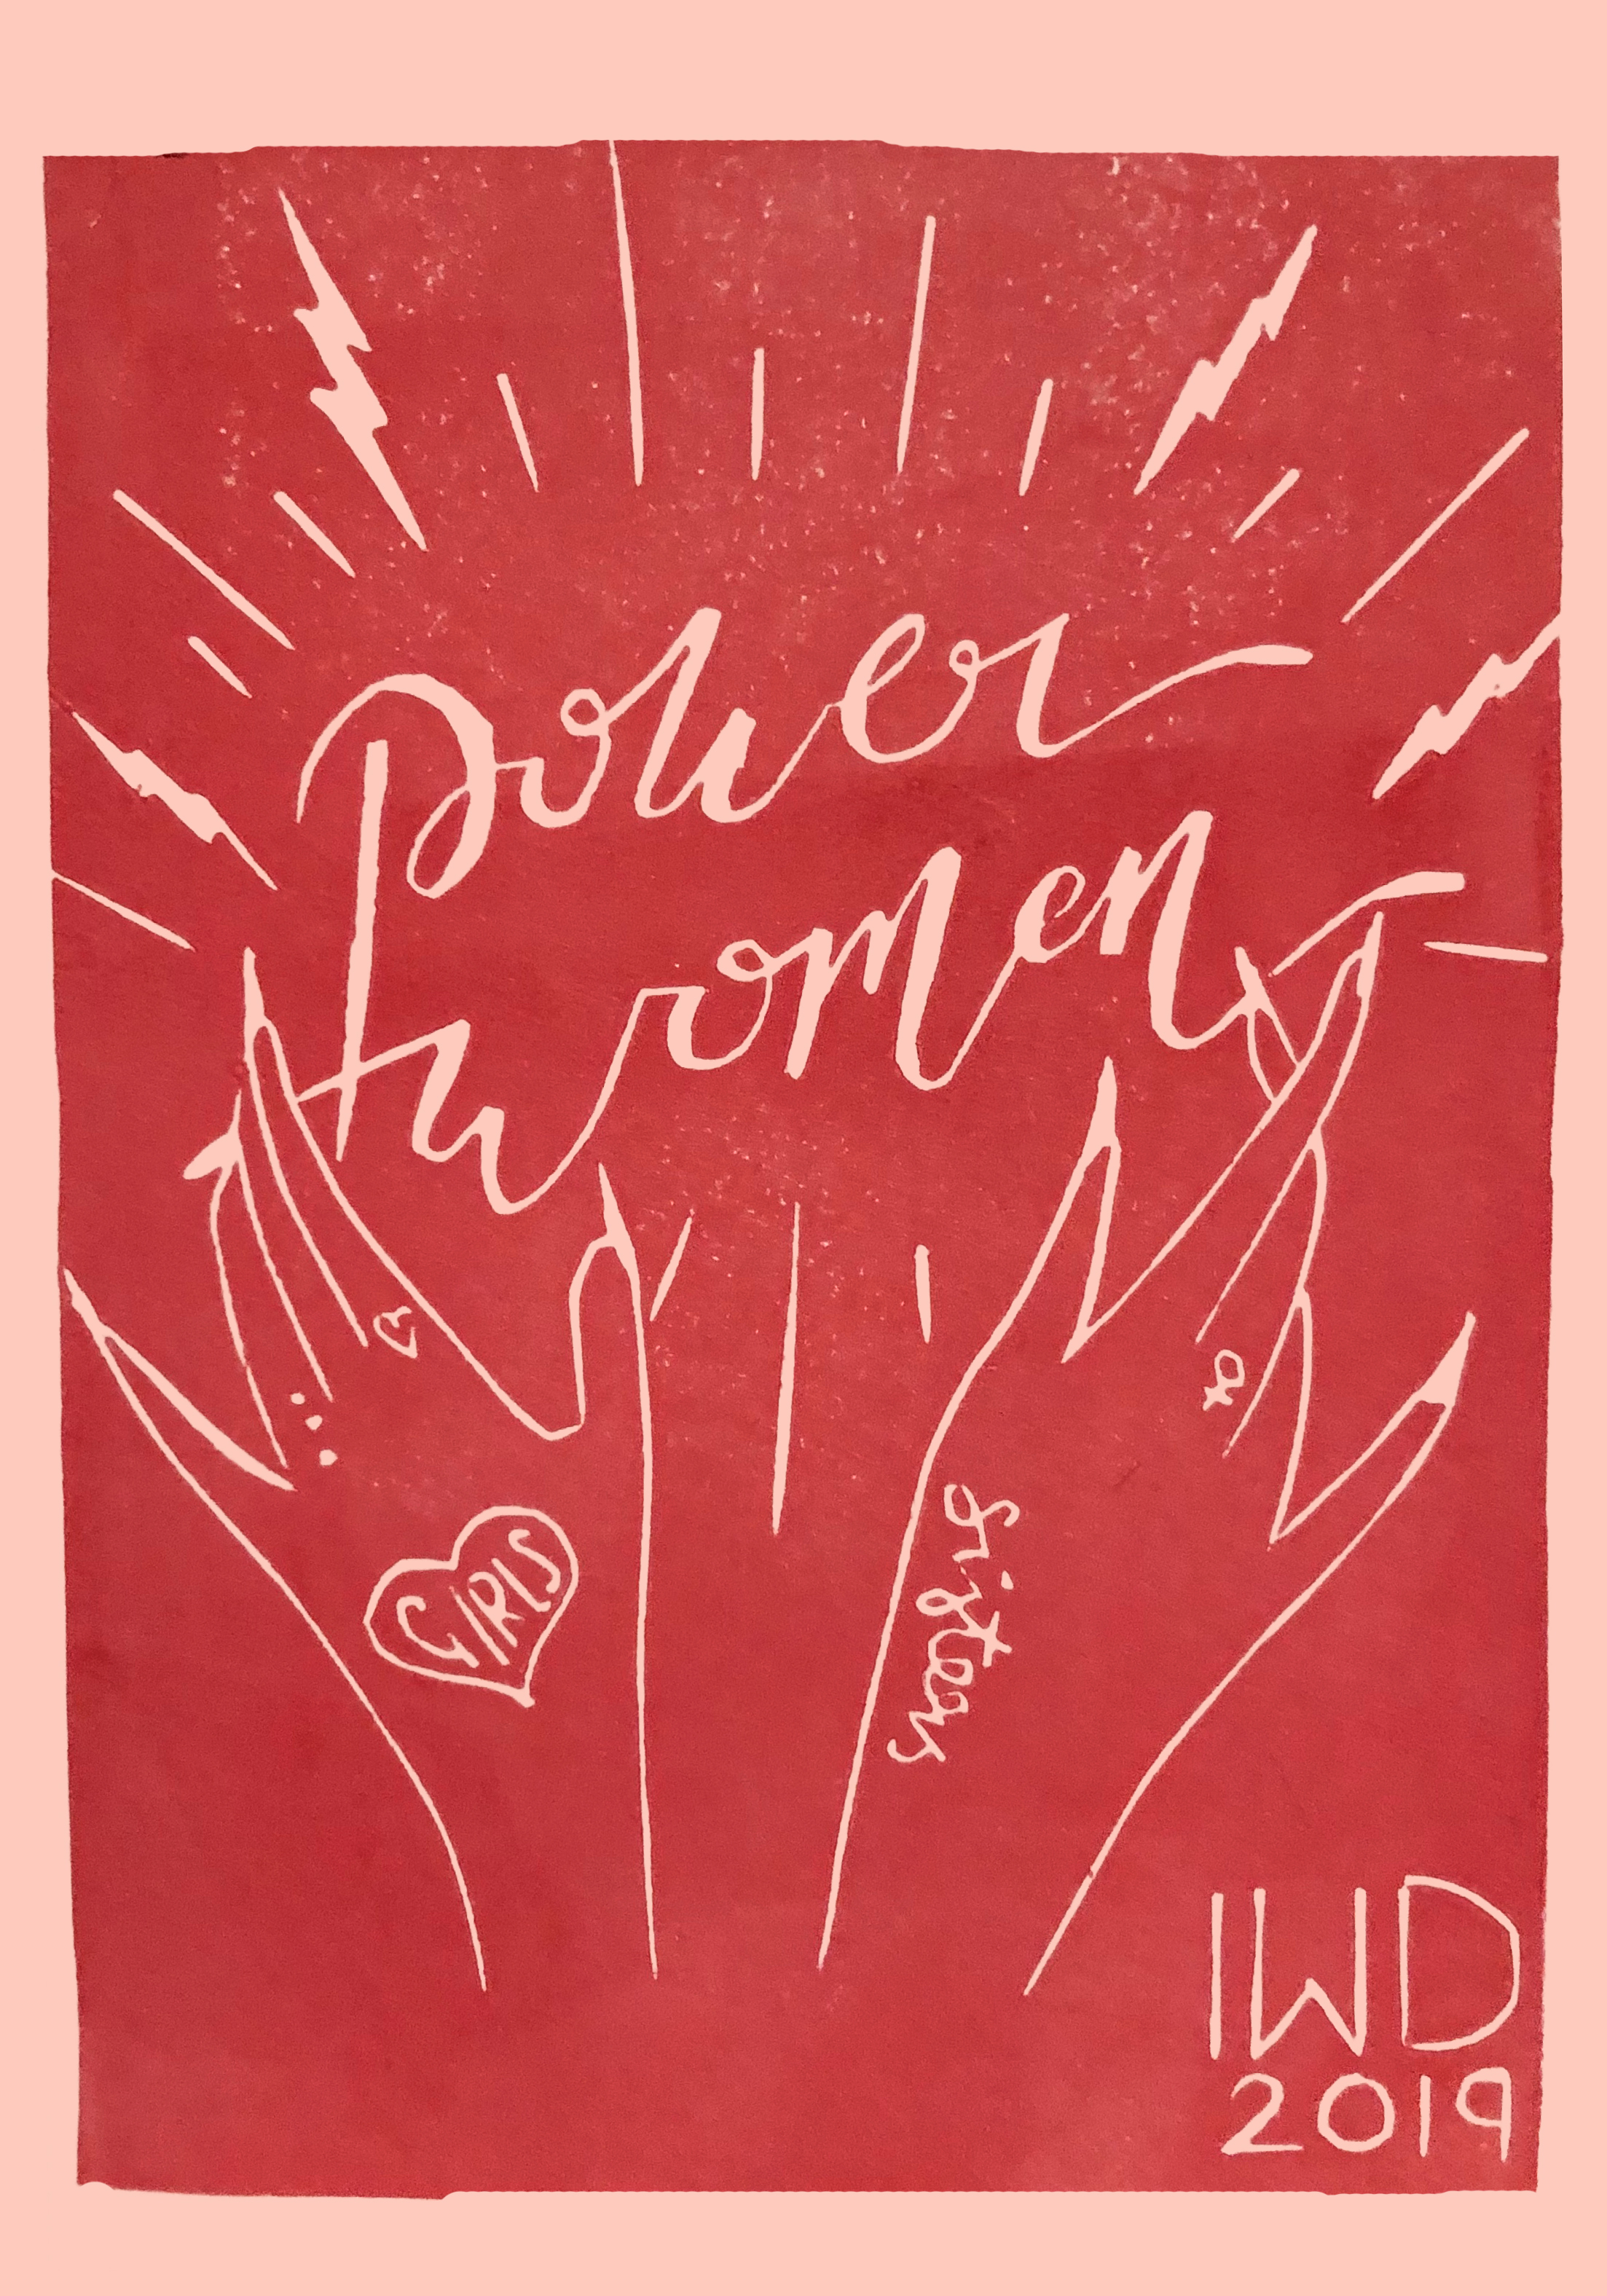 IWD 2019EVENT POSTCARDS - Handmade illustration that was lino-printed as an A6 postcards for the Makers academy International Women's day events 2019. The bold illustration focused on the magic that women hold and the bond between sisters & women supporting each other.